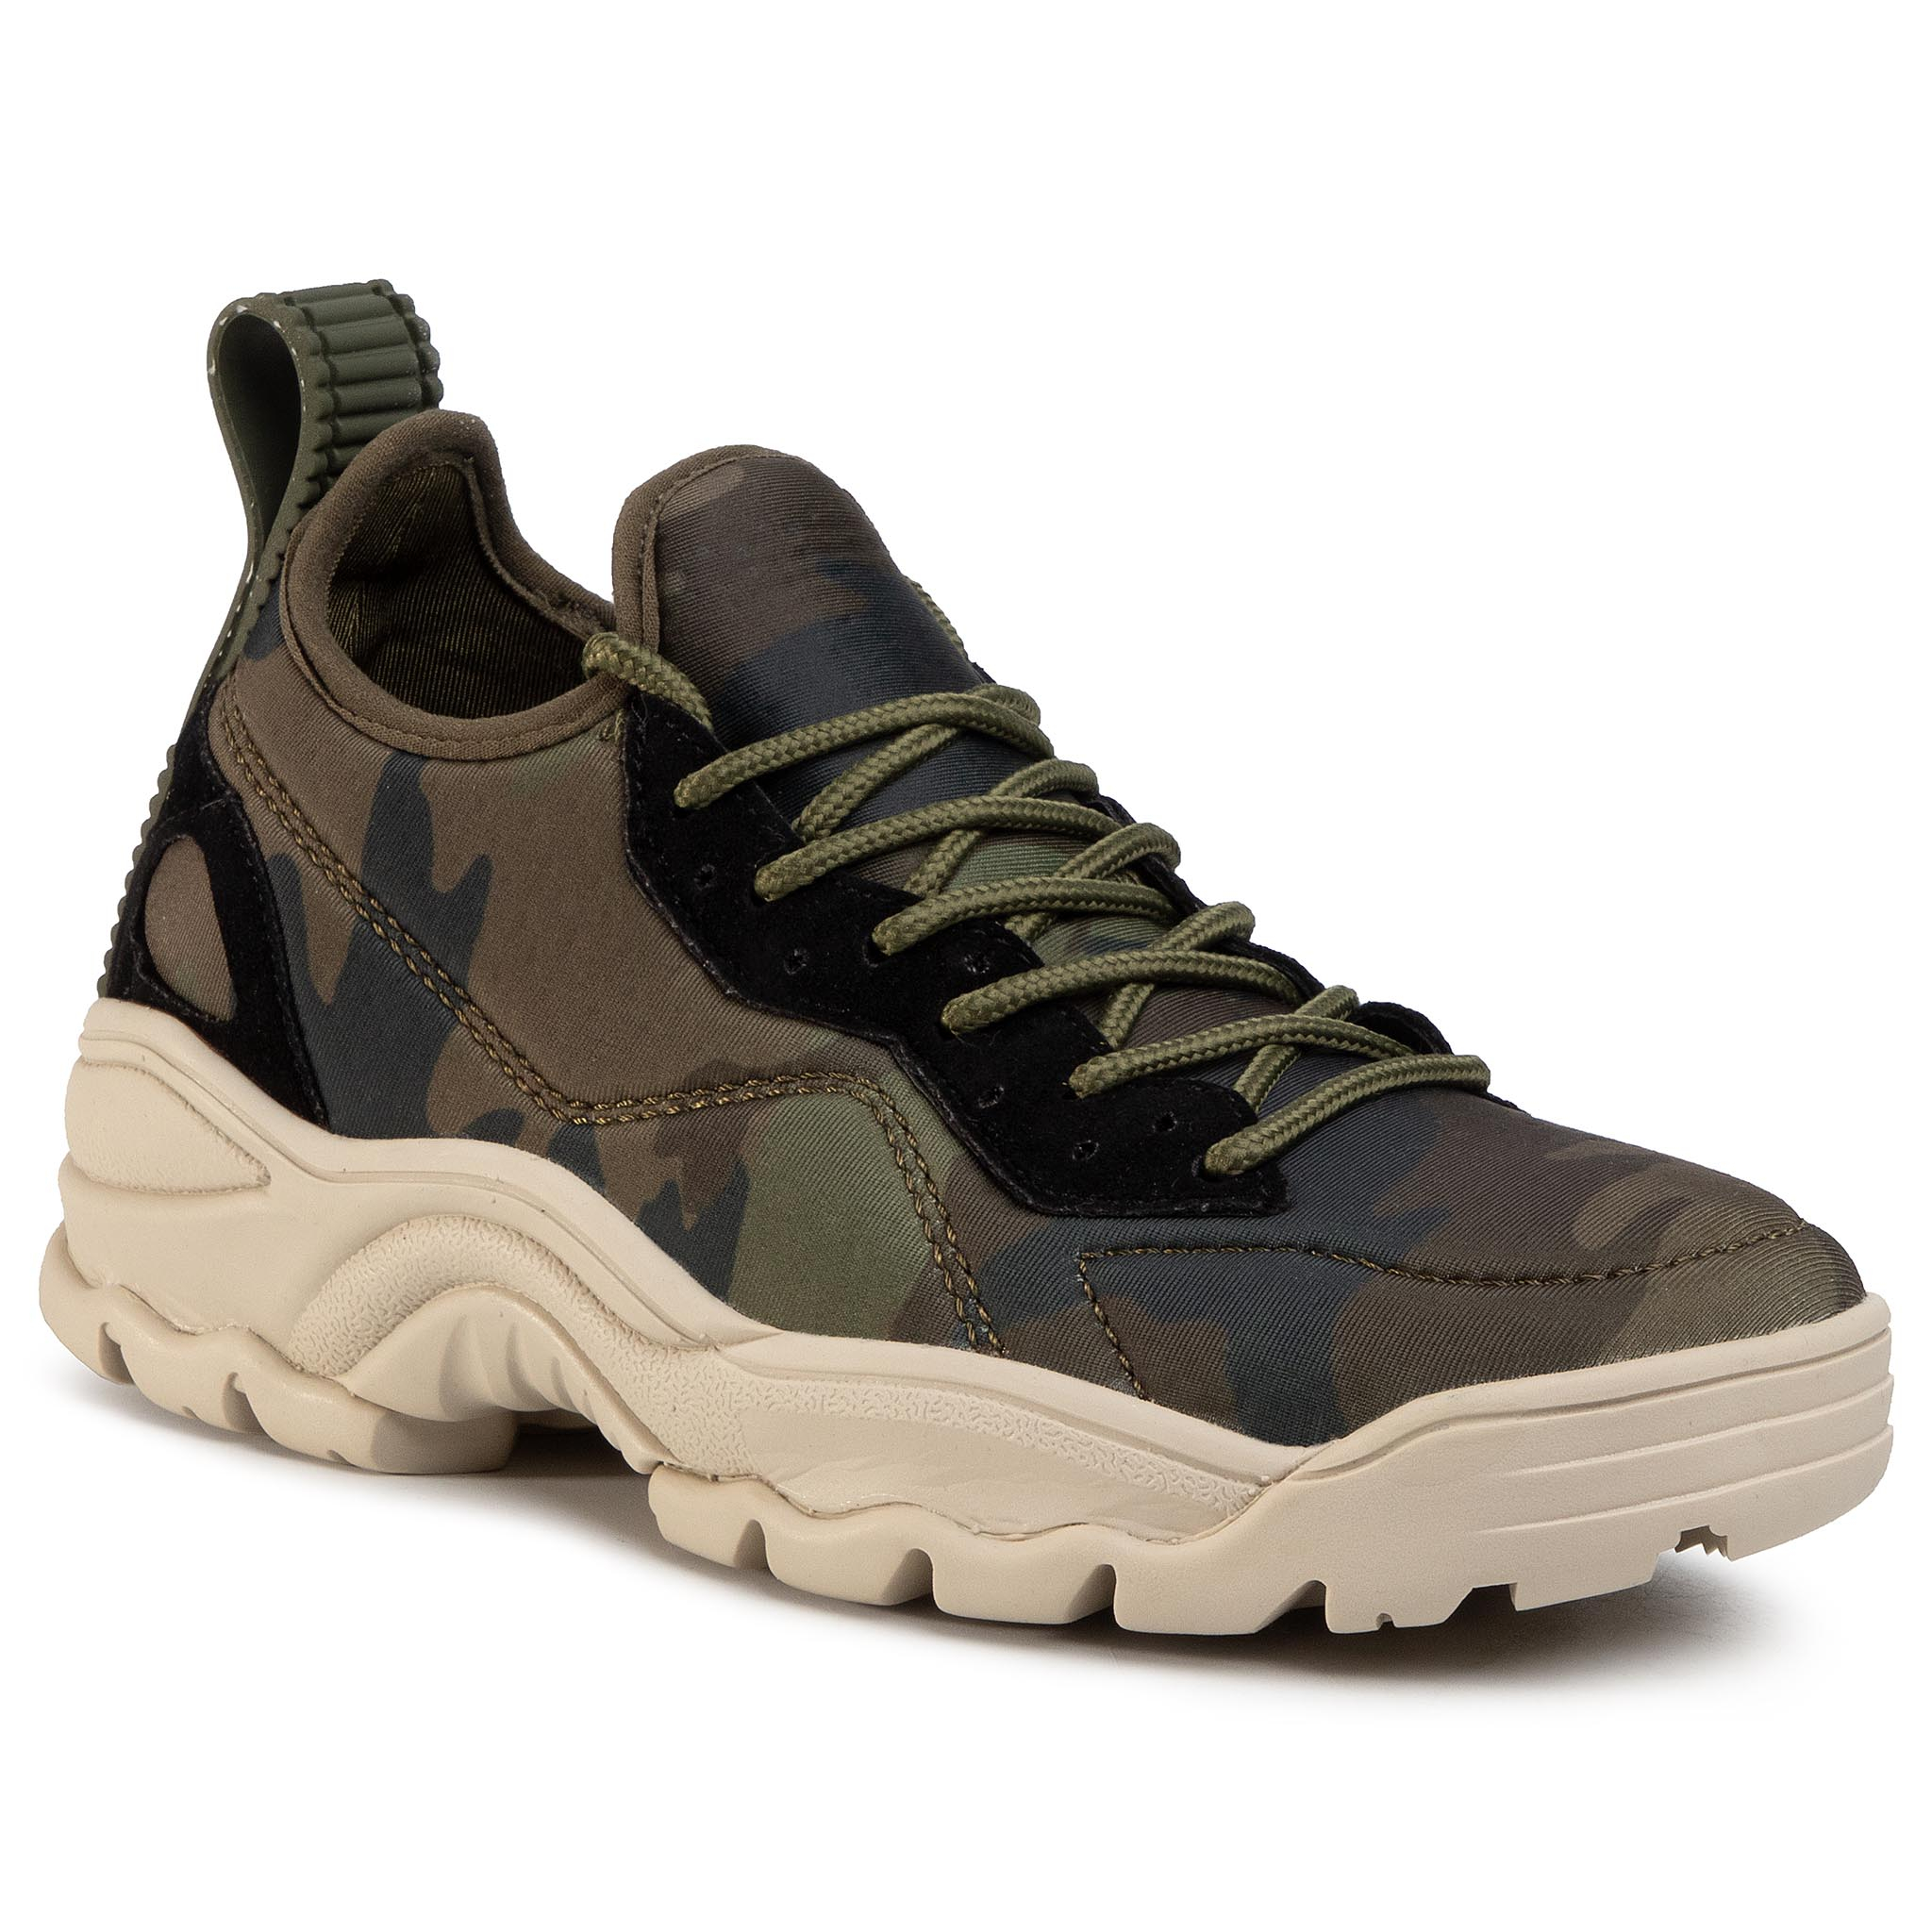 Sneakers KENDALL + KYLIE - Dre Olive Camo